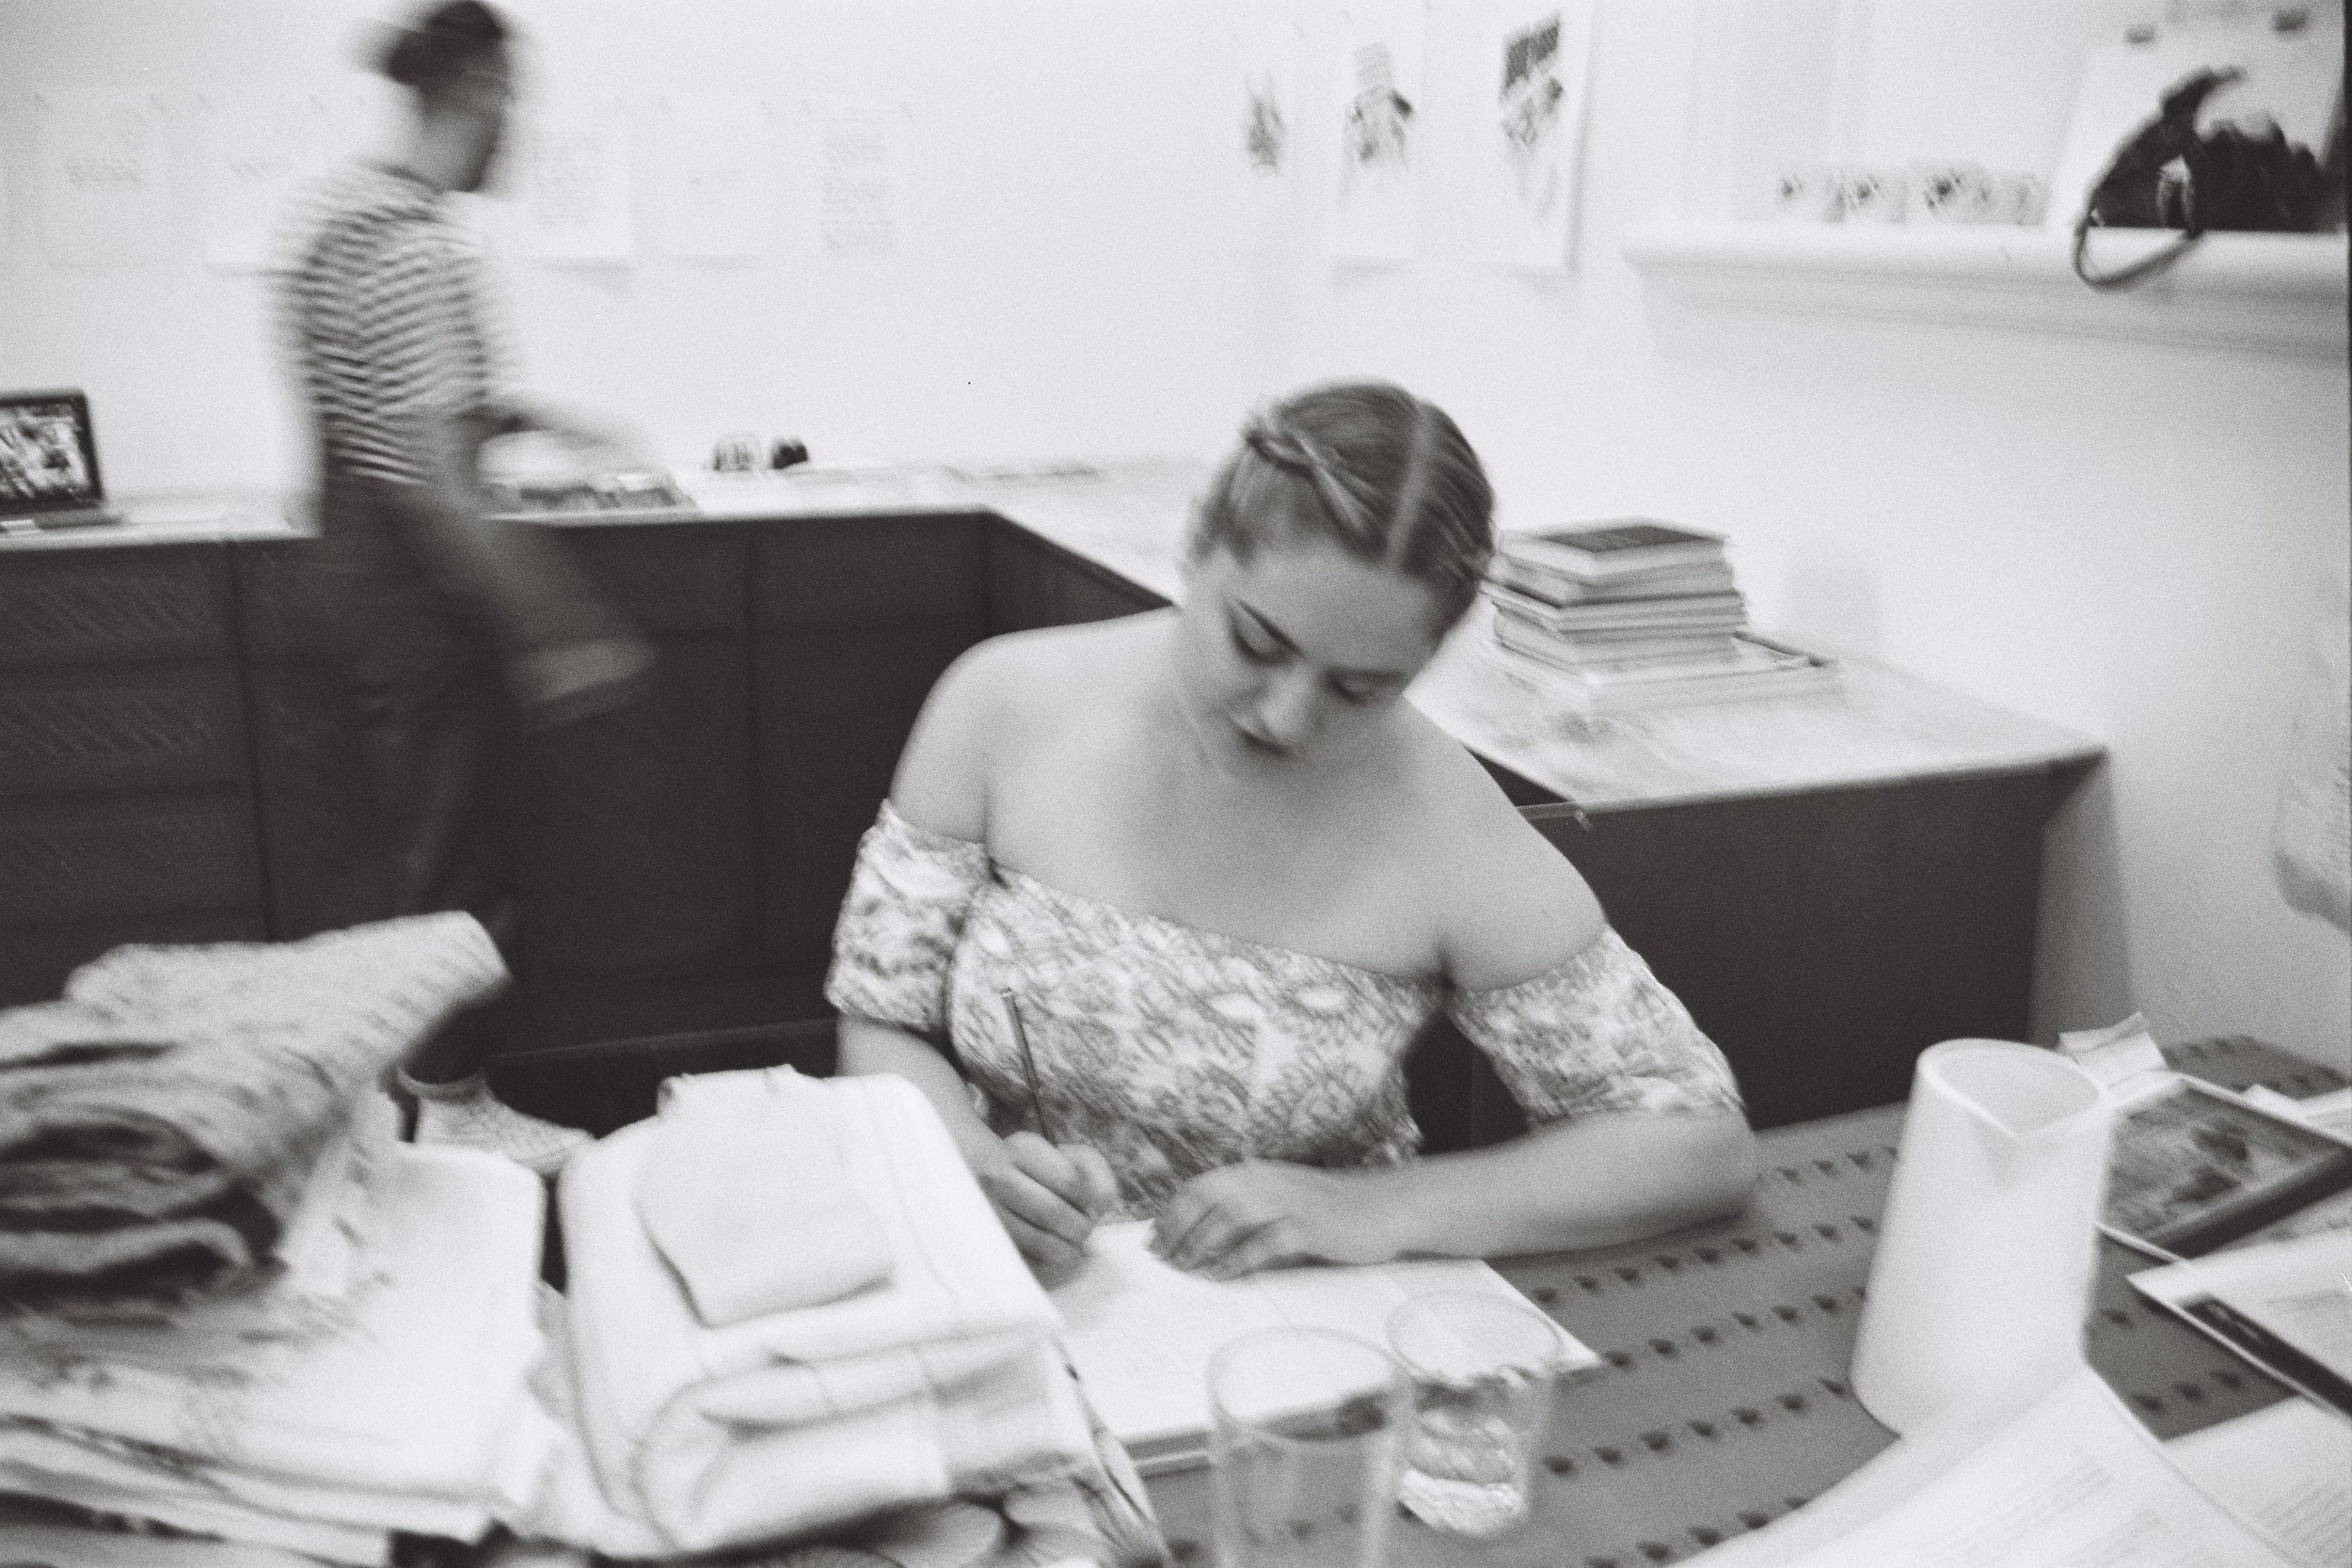 Sophie Durand, image of rehearsal for 'Dolphin Days' during its development at the Perth Centre for Contemporary Arts, 2017, 35 mm black and white photograph